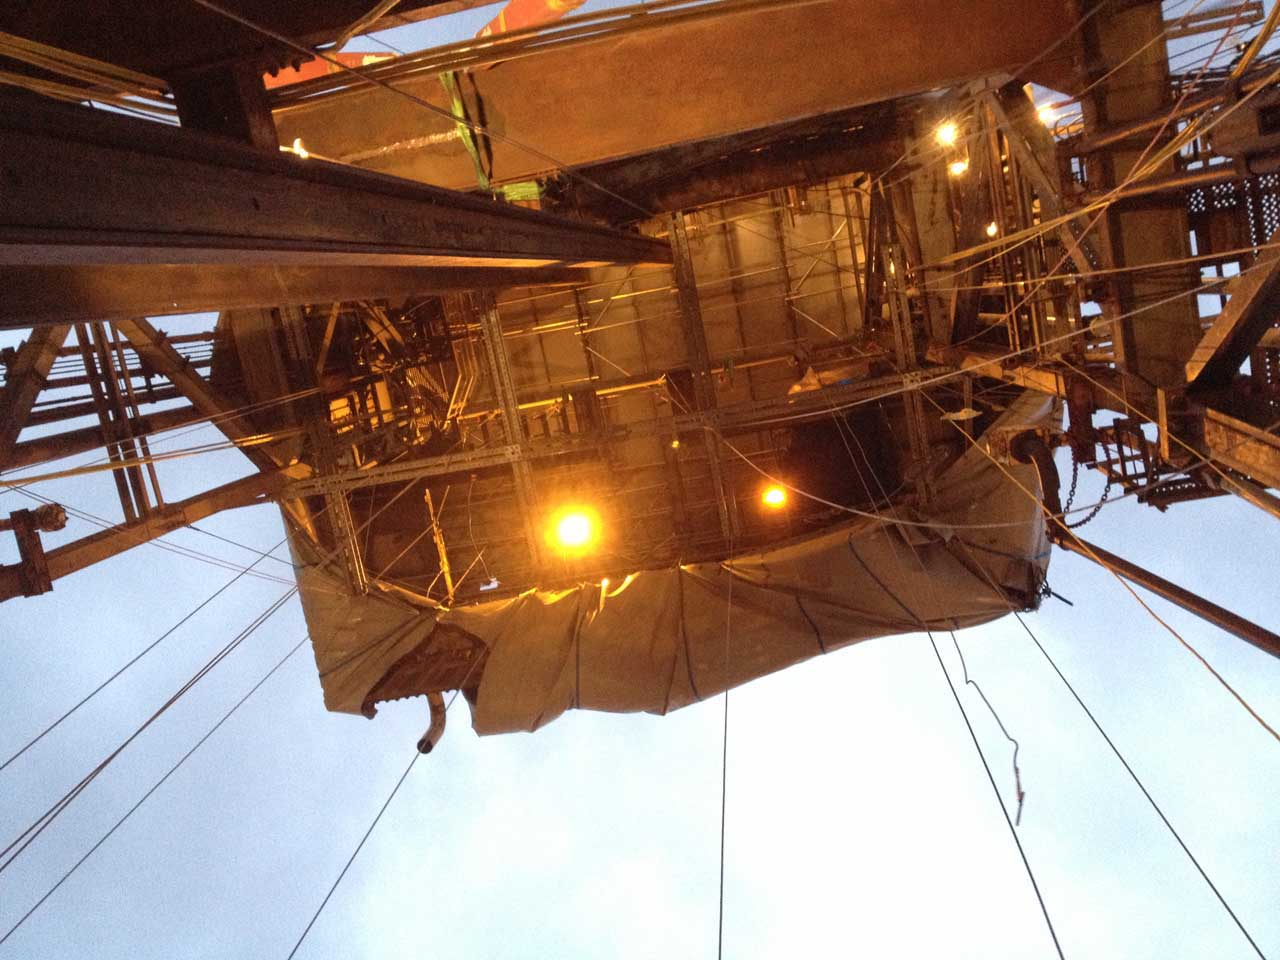 rope access technicians commence work on high level electrical installations